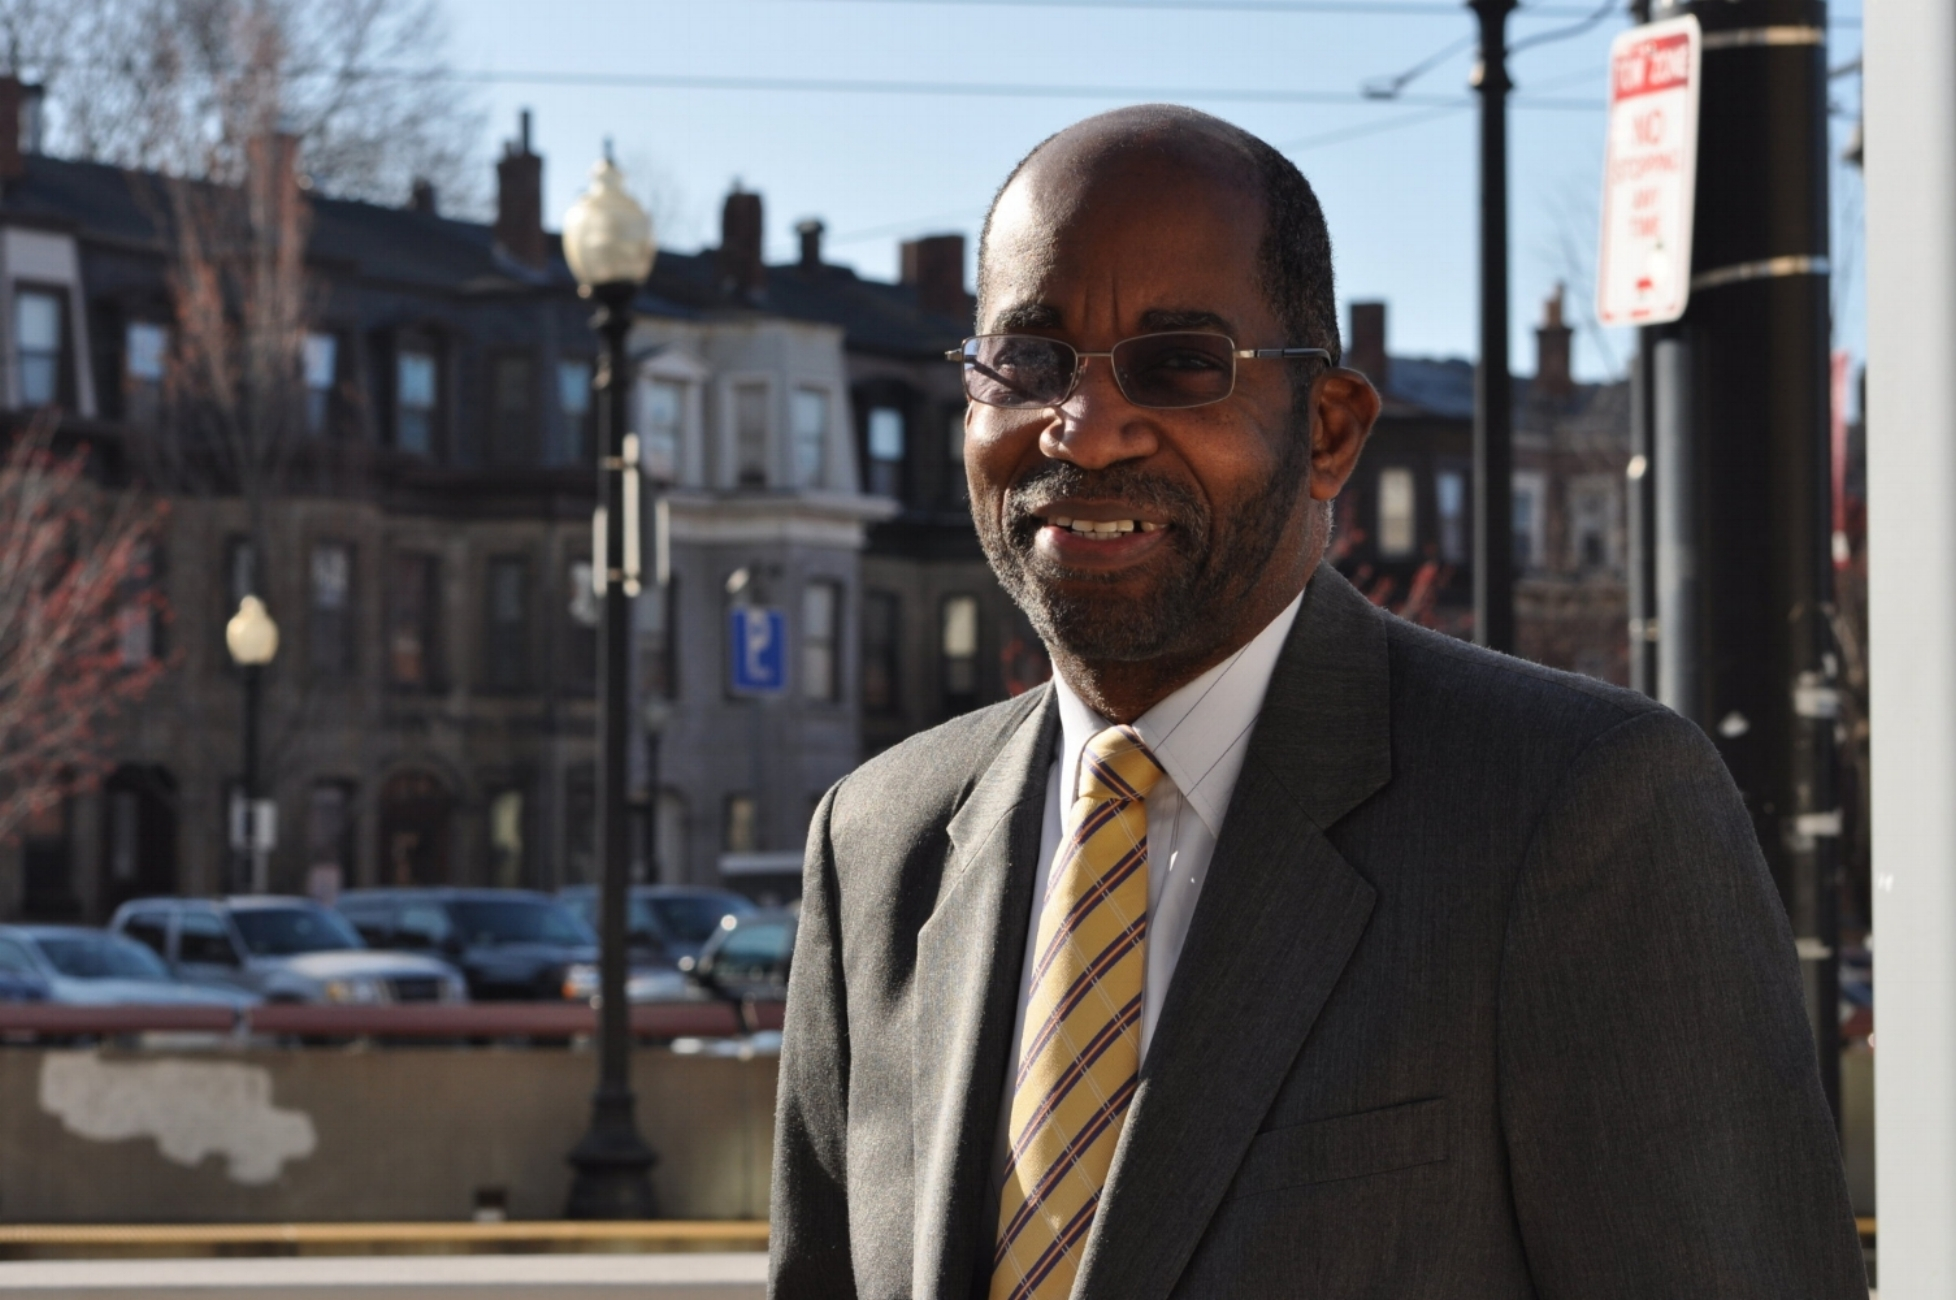 A new study that Prof. Williams co-authored documents the negative effects of police shootings of unarmed black men on the mental health of an African American population. Read more about the study and its media coverage  here .